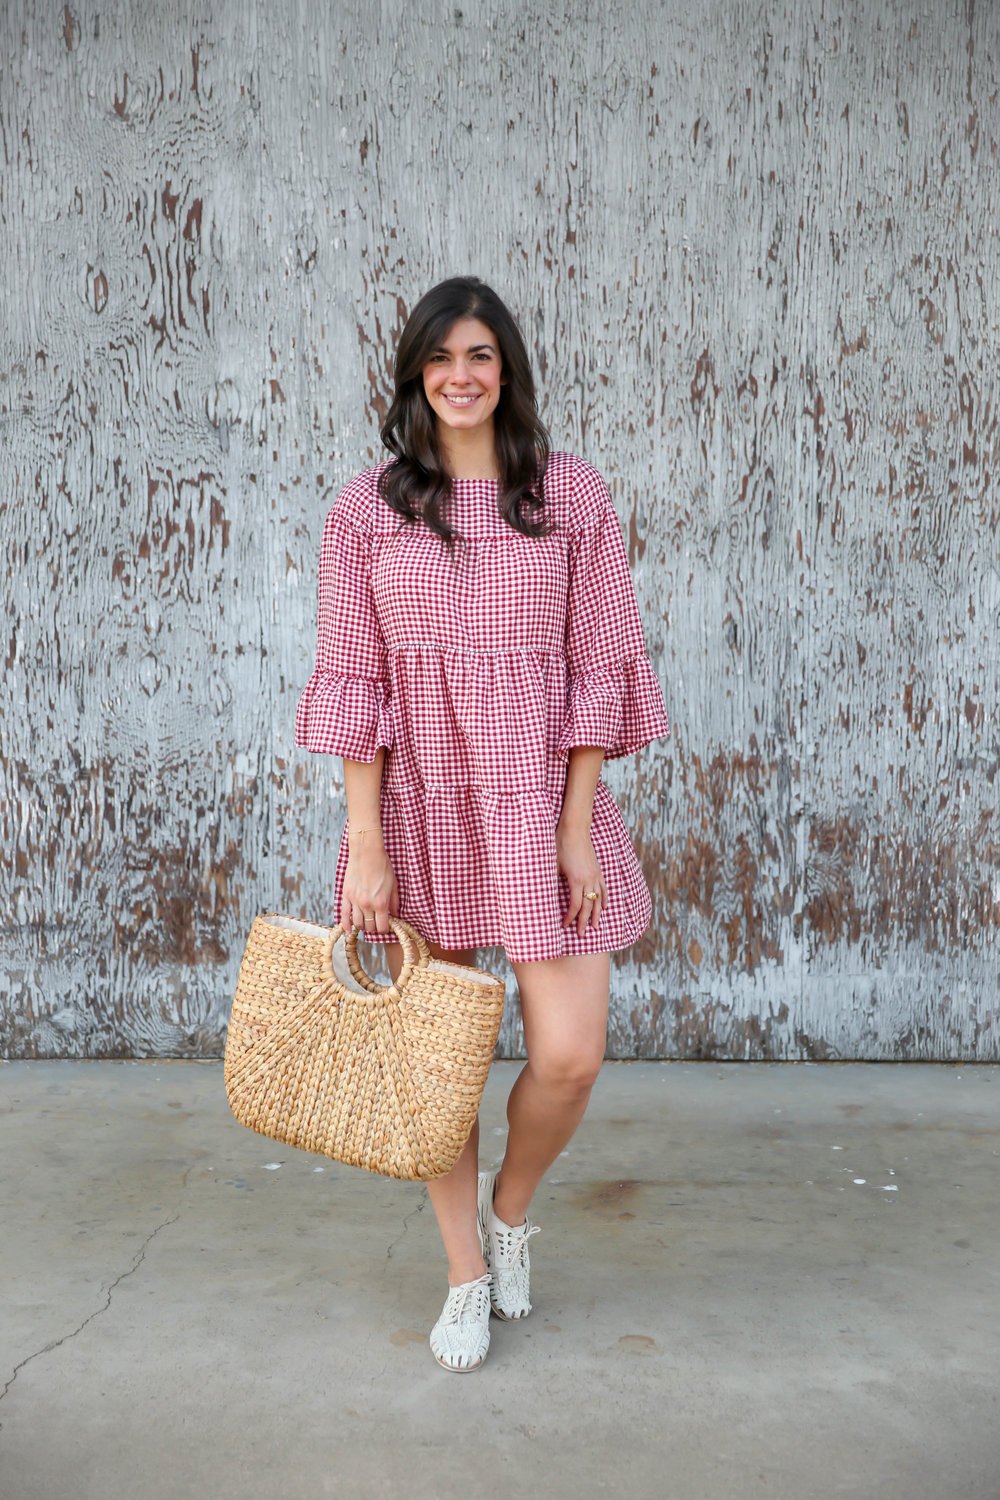 red-white-gingham-dress-for-summer-lauren-schwaiger-charlotte-style-blogger.jpg